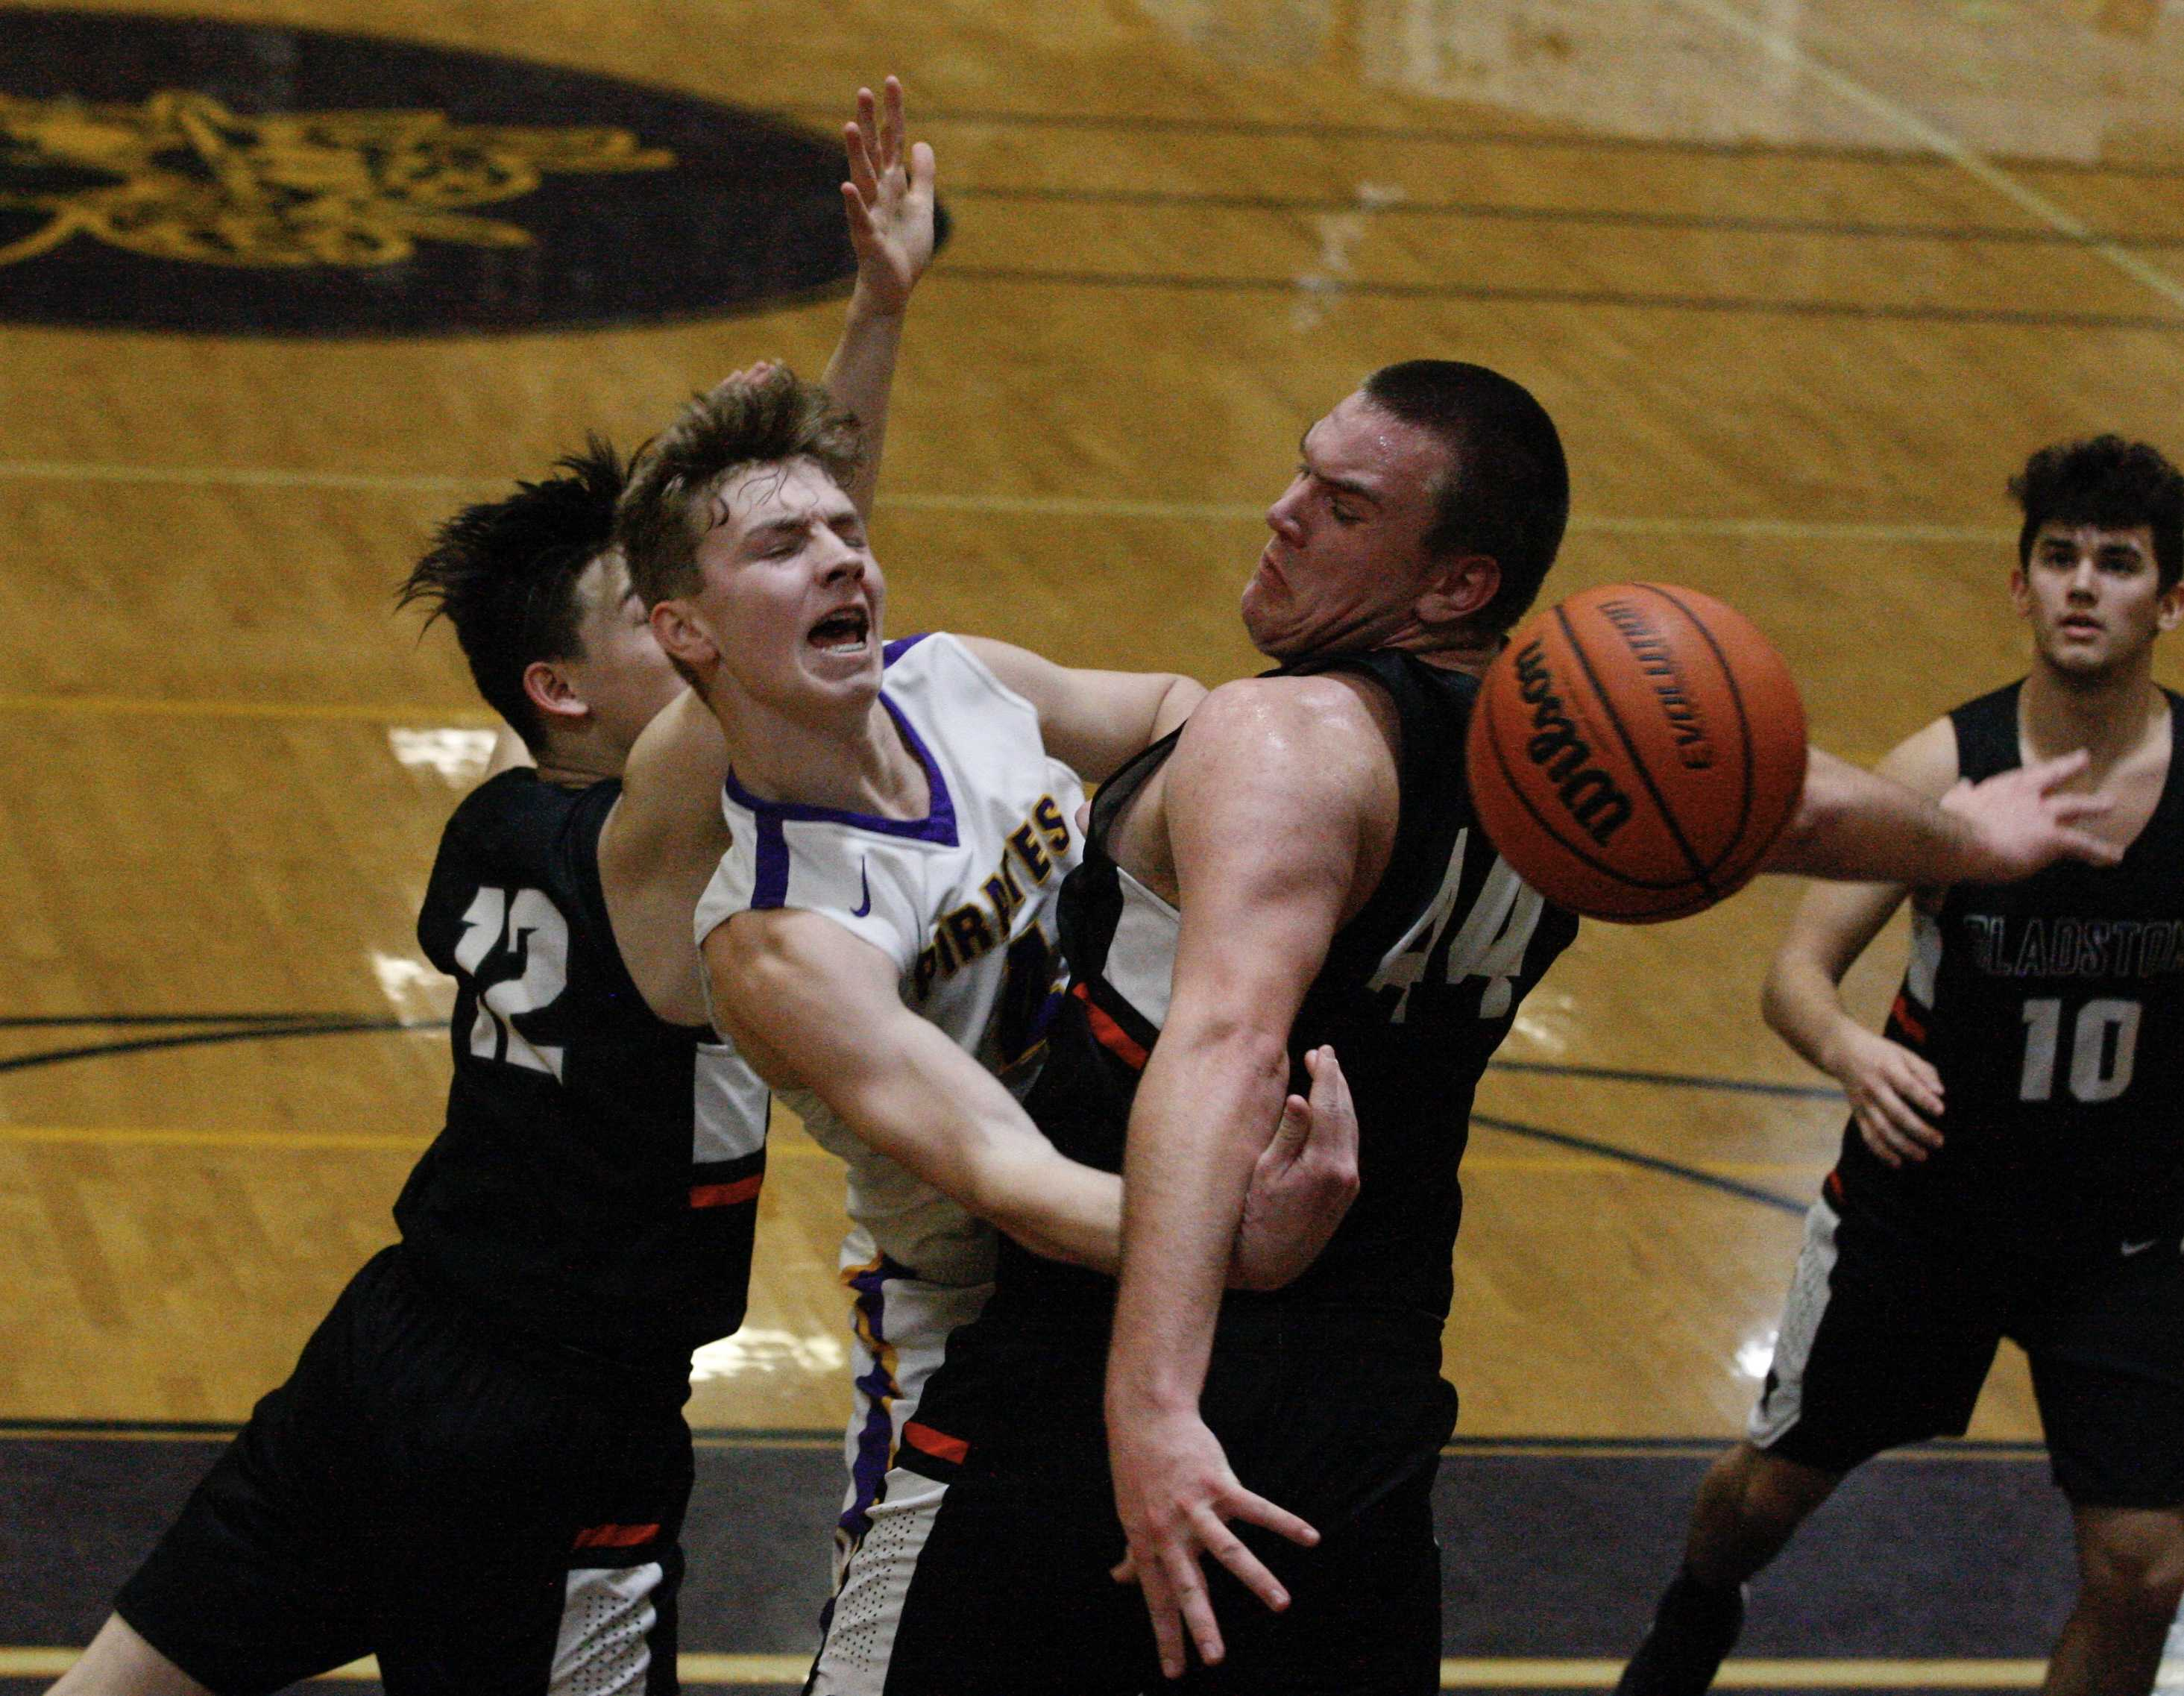 Marshfield's Jordy Miles gets caught in a squeeze from Thomas Tacha and Jackson Simmons of Gladstone. (Norm Maves Jr.)